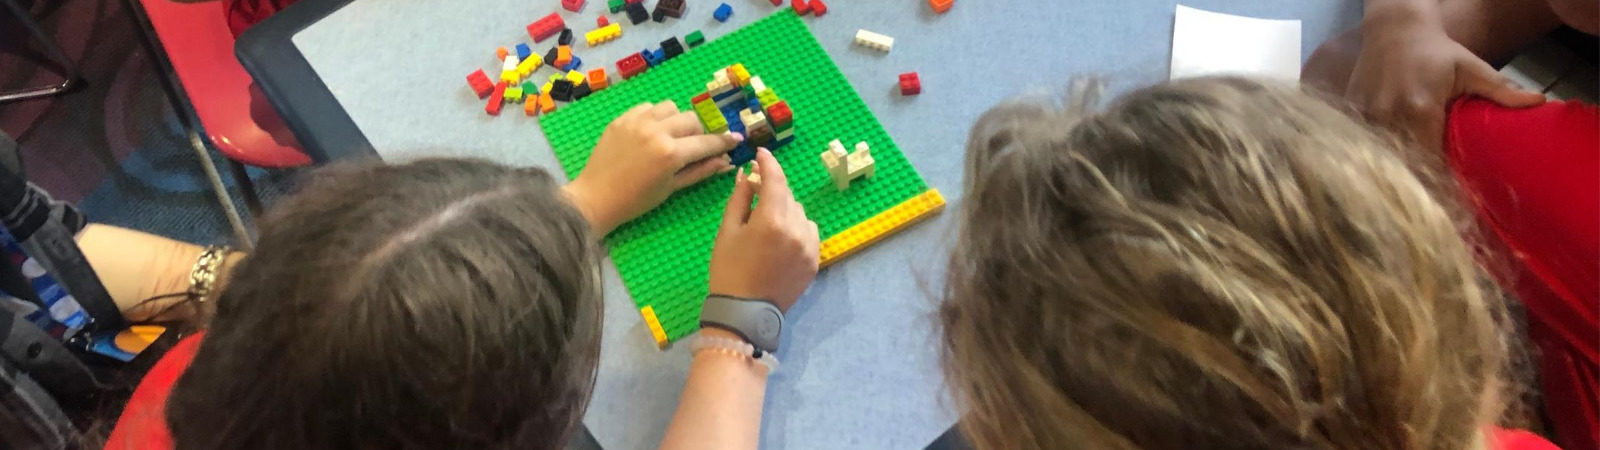 Students working together on a lego project sitting around a table